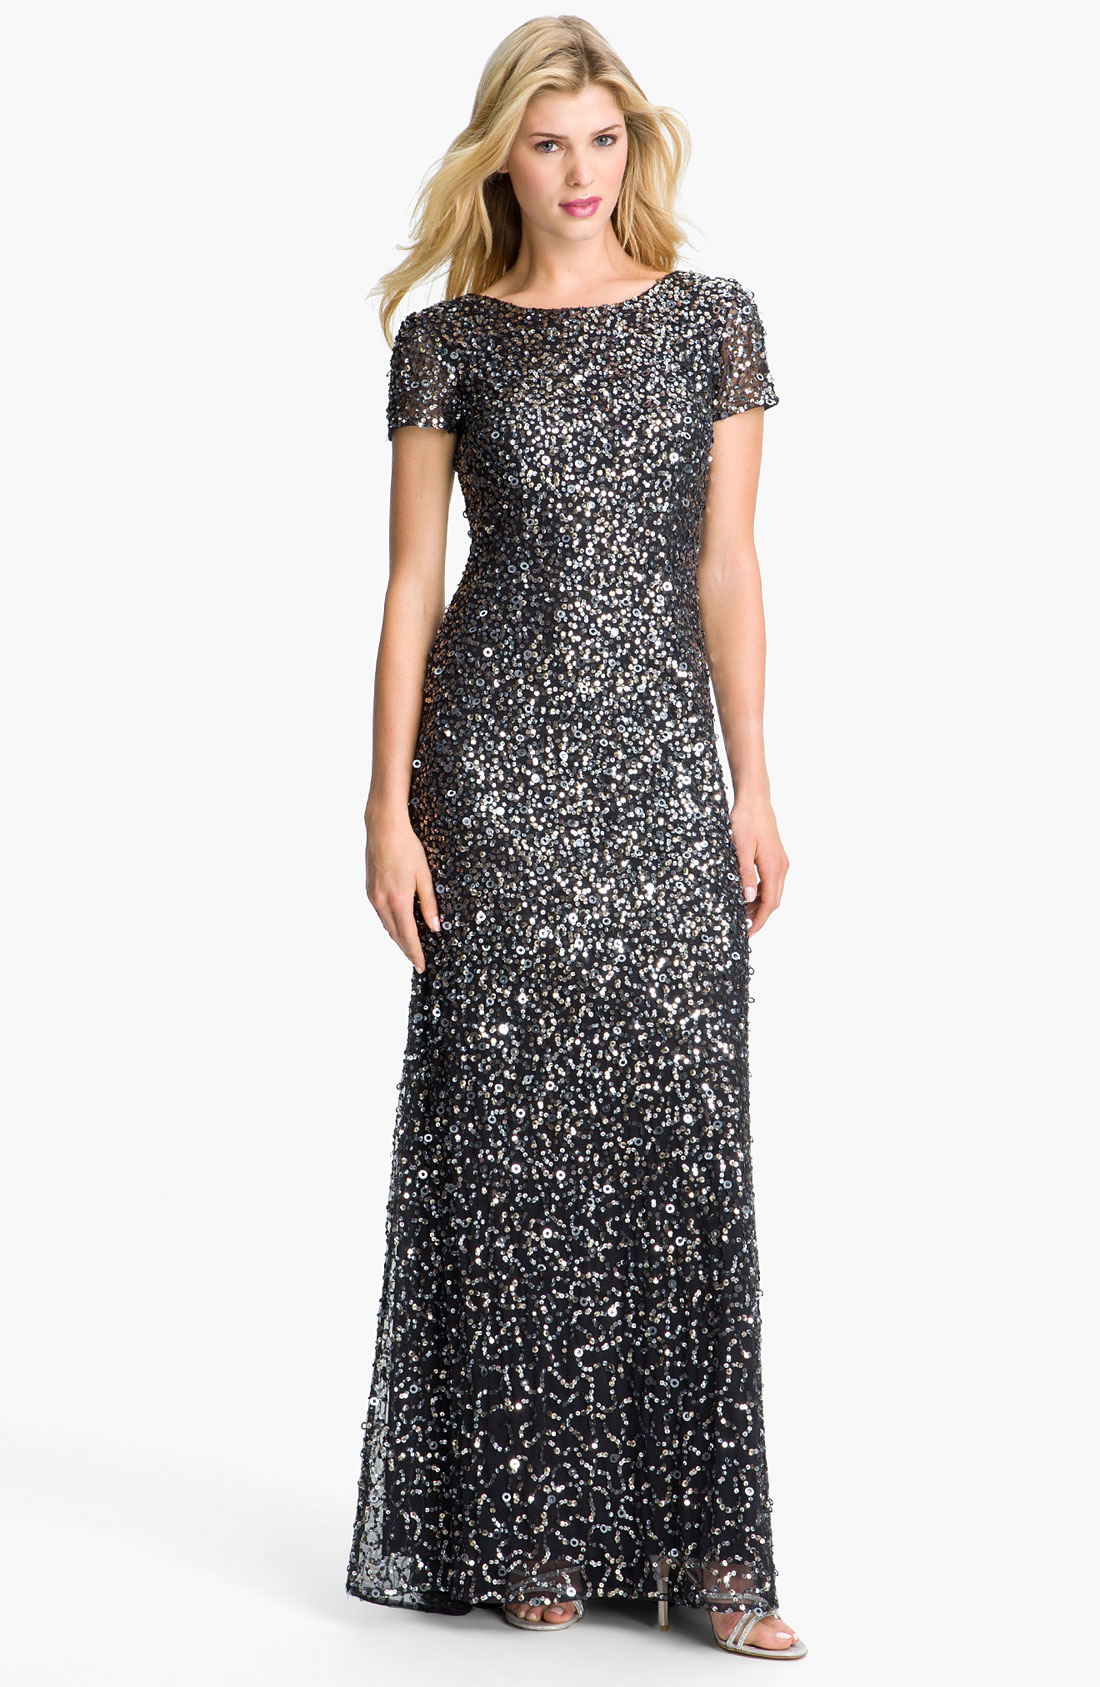 Discover our range of Sequin Dresses and embellished dresses at ASOS. From beaded dresses to sequin party dresses to embellished evening dresses.